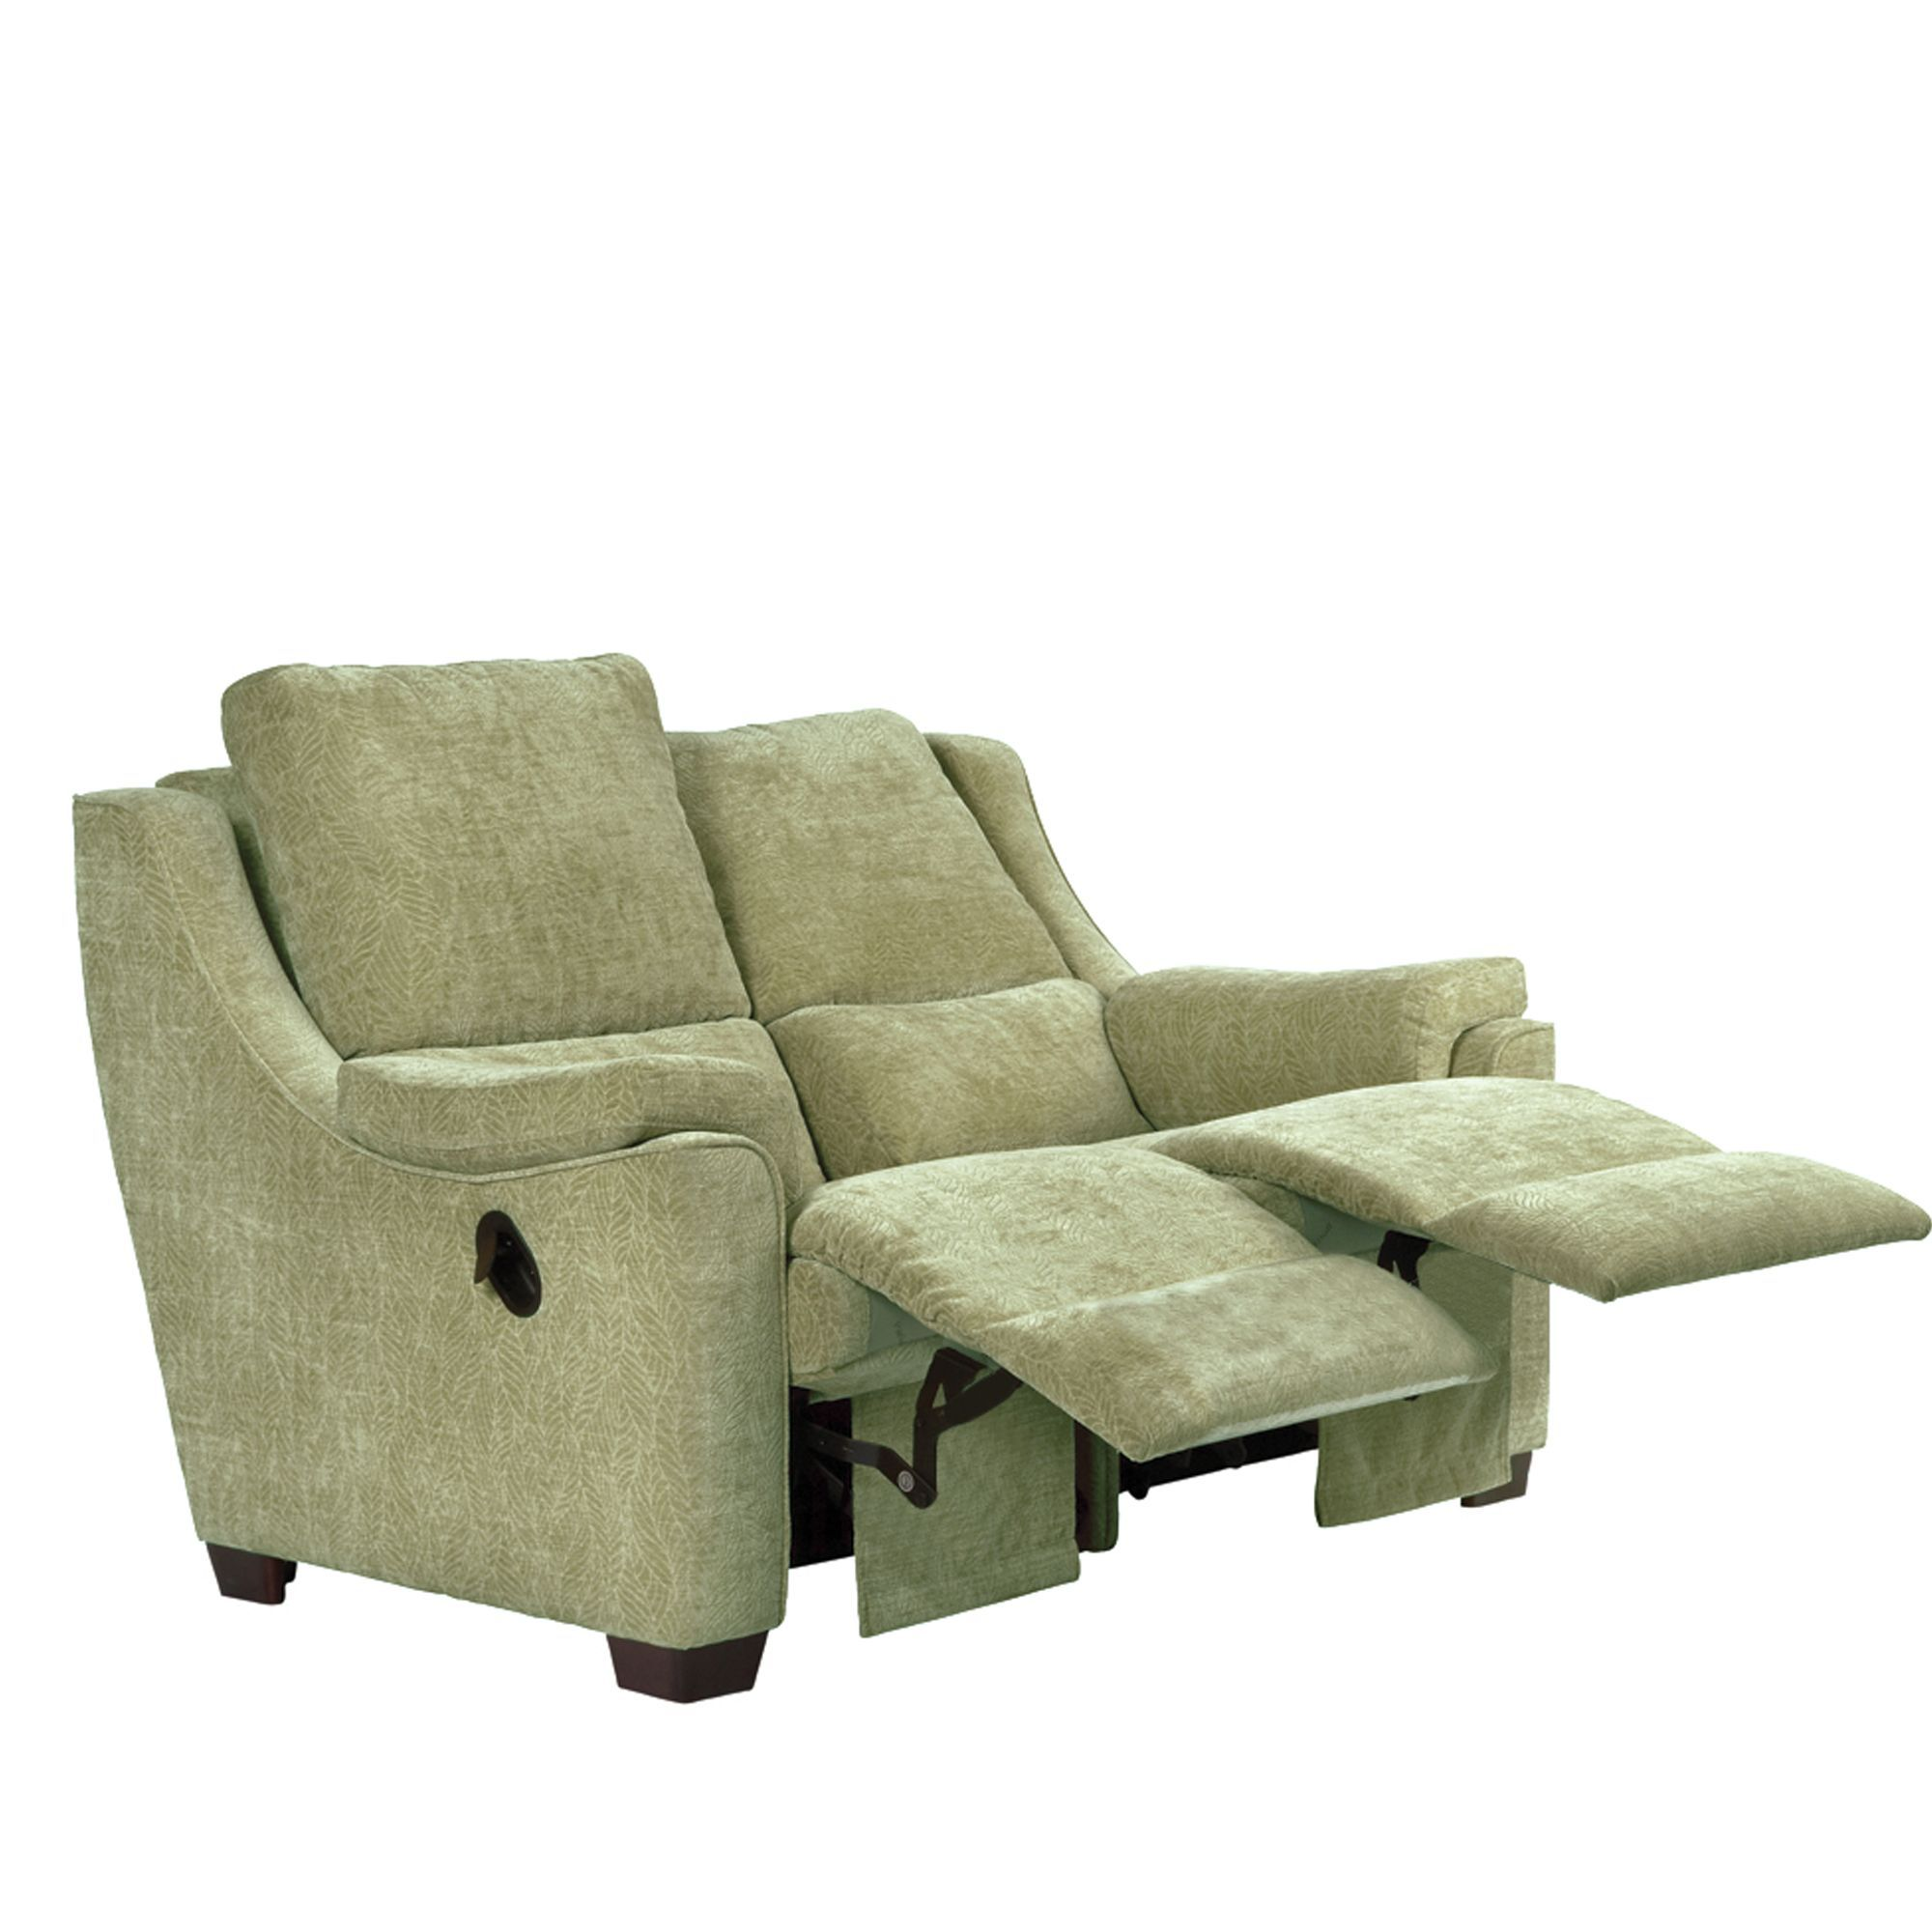 Parker Knoll Albany 2 Seater Manual Recliner Sofa Parker